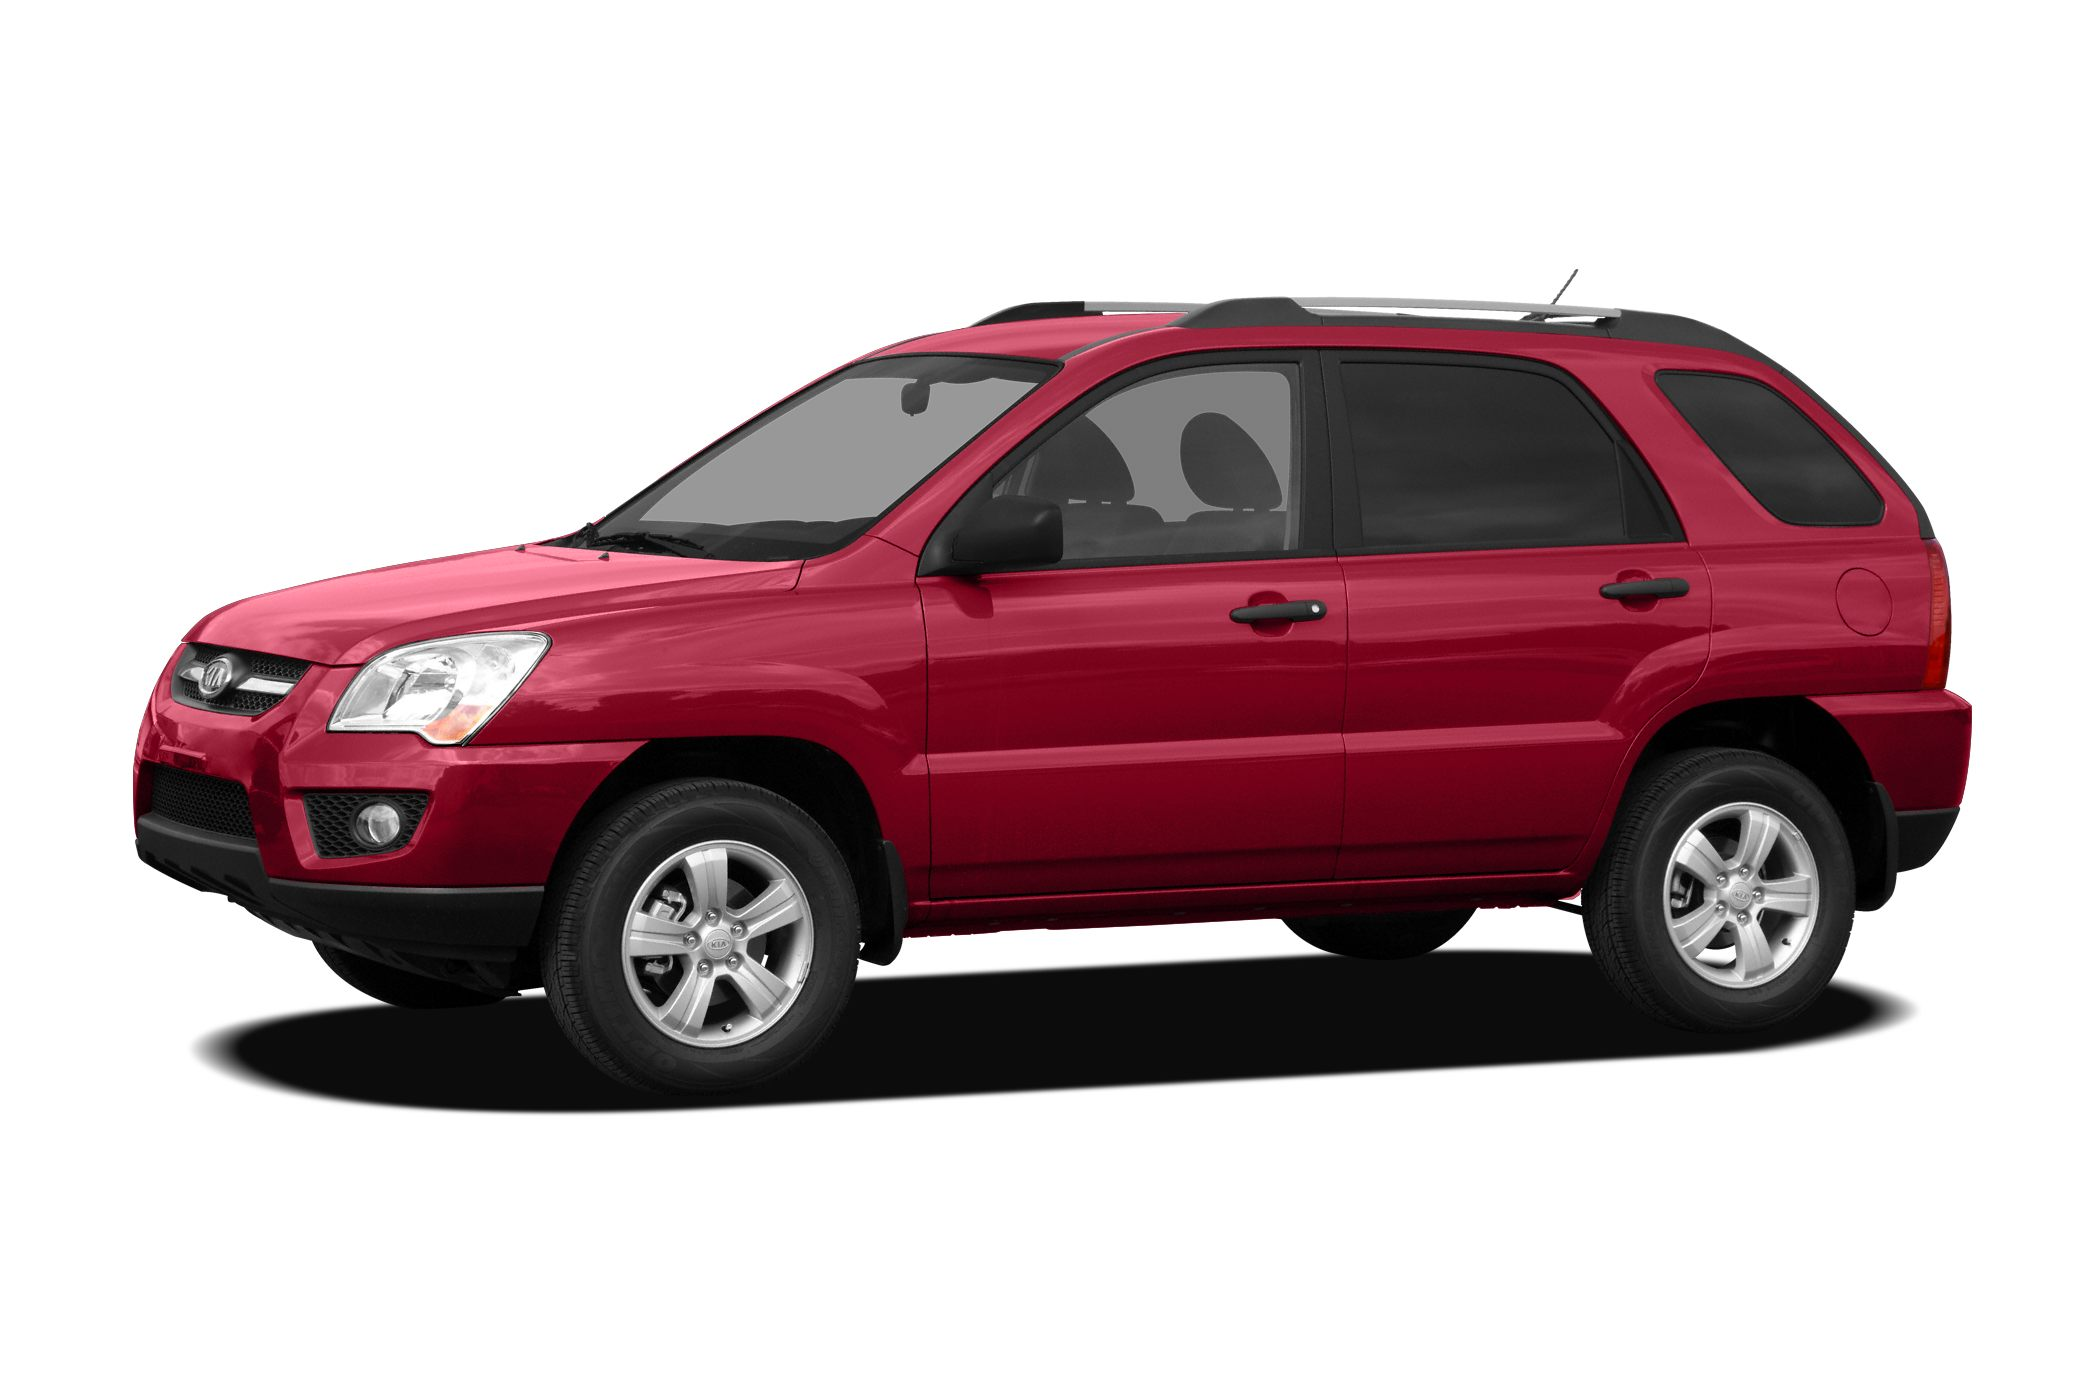 2010 Kia Sportage LX SUV for sale in Panama City for $11,991 with 60,126 miles